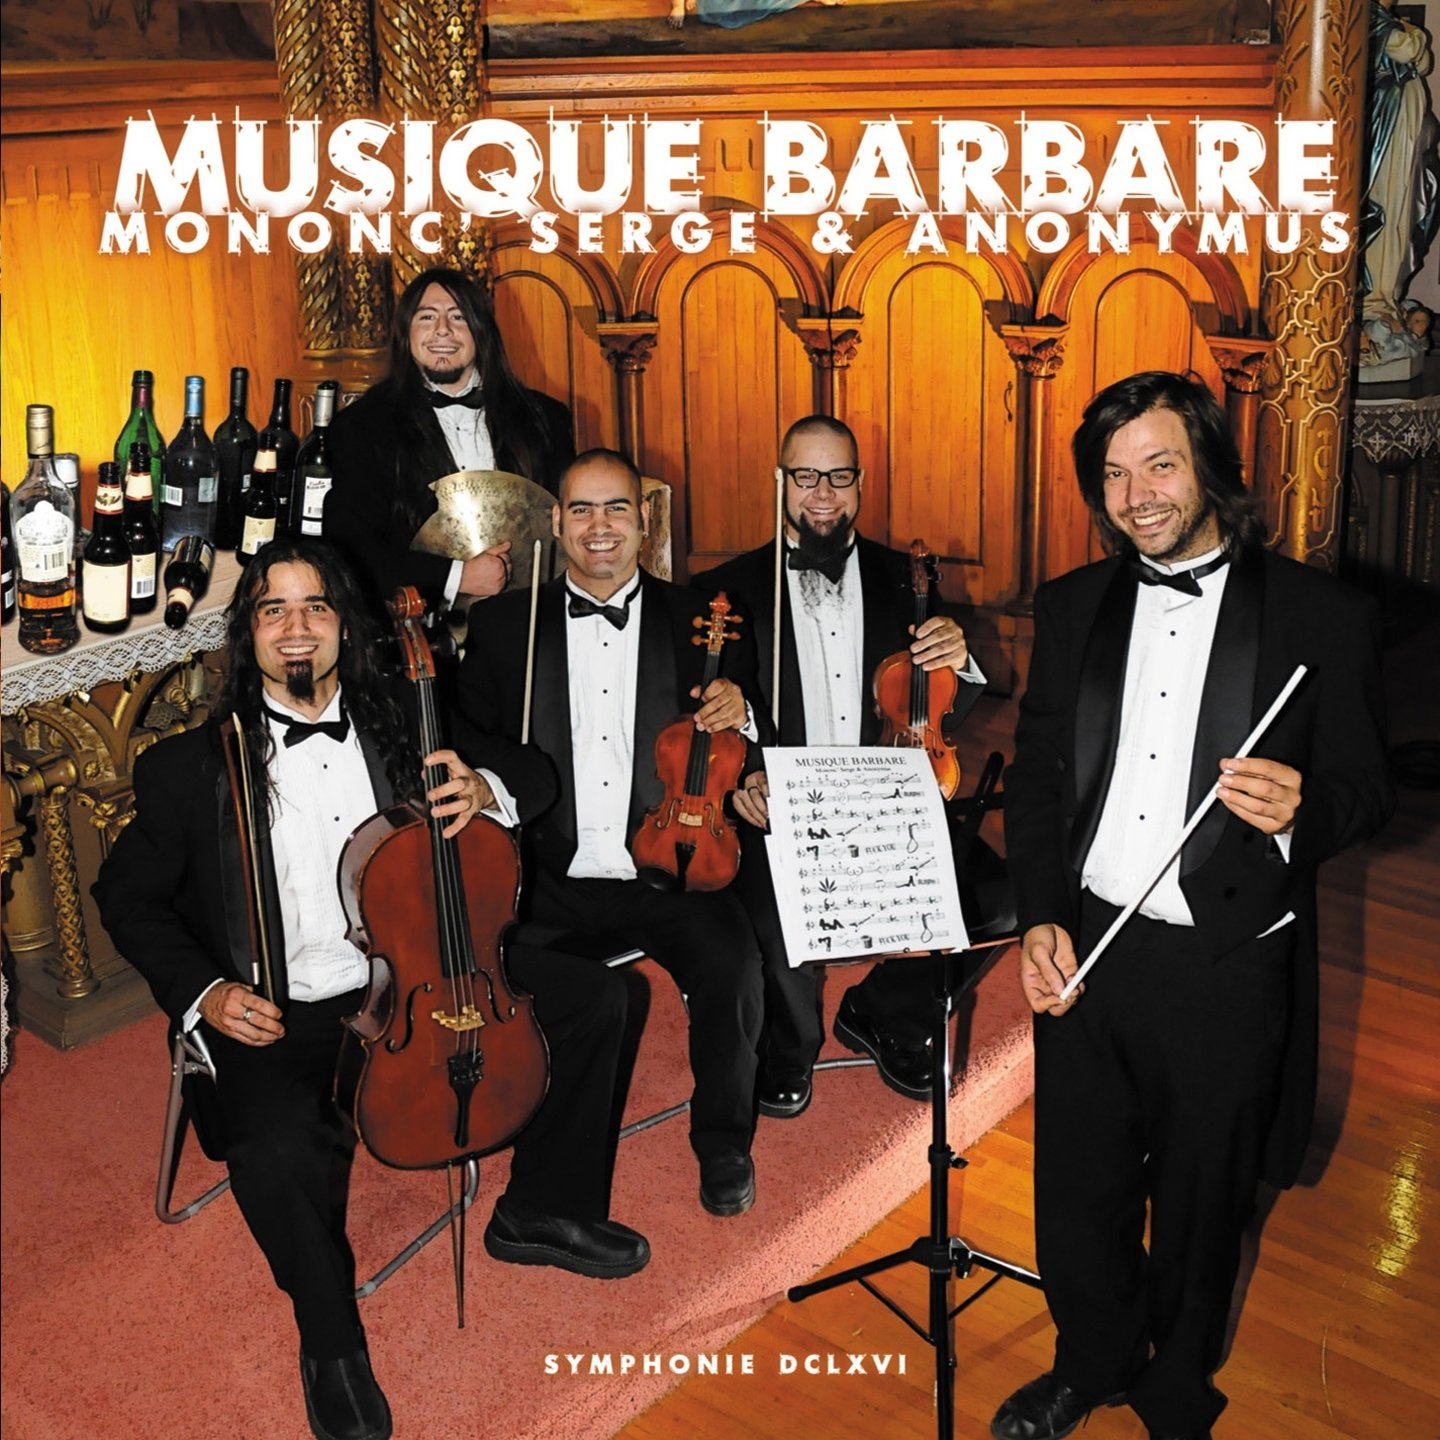 Mononc' Serge & Anonymus - Musique Barbare - Amazon.com Music